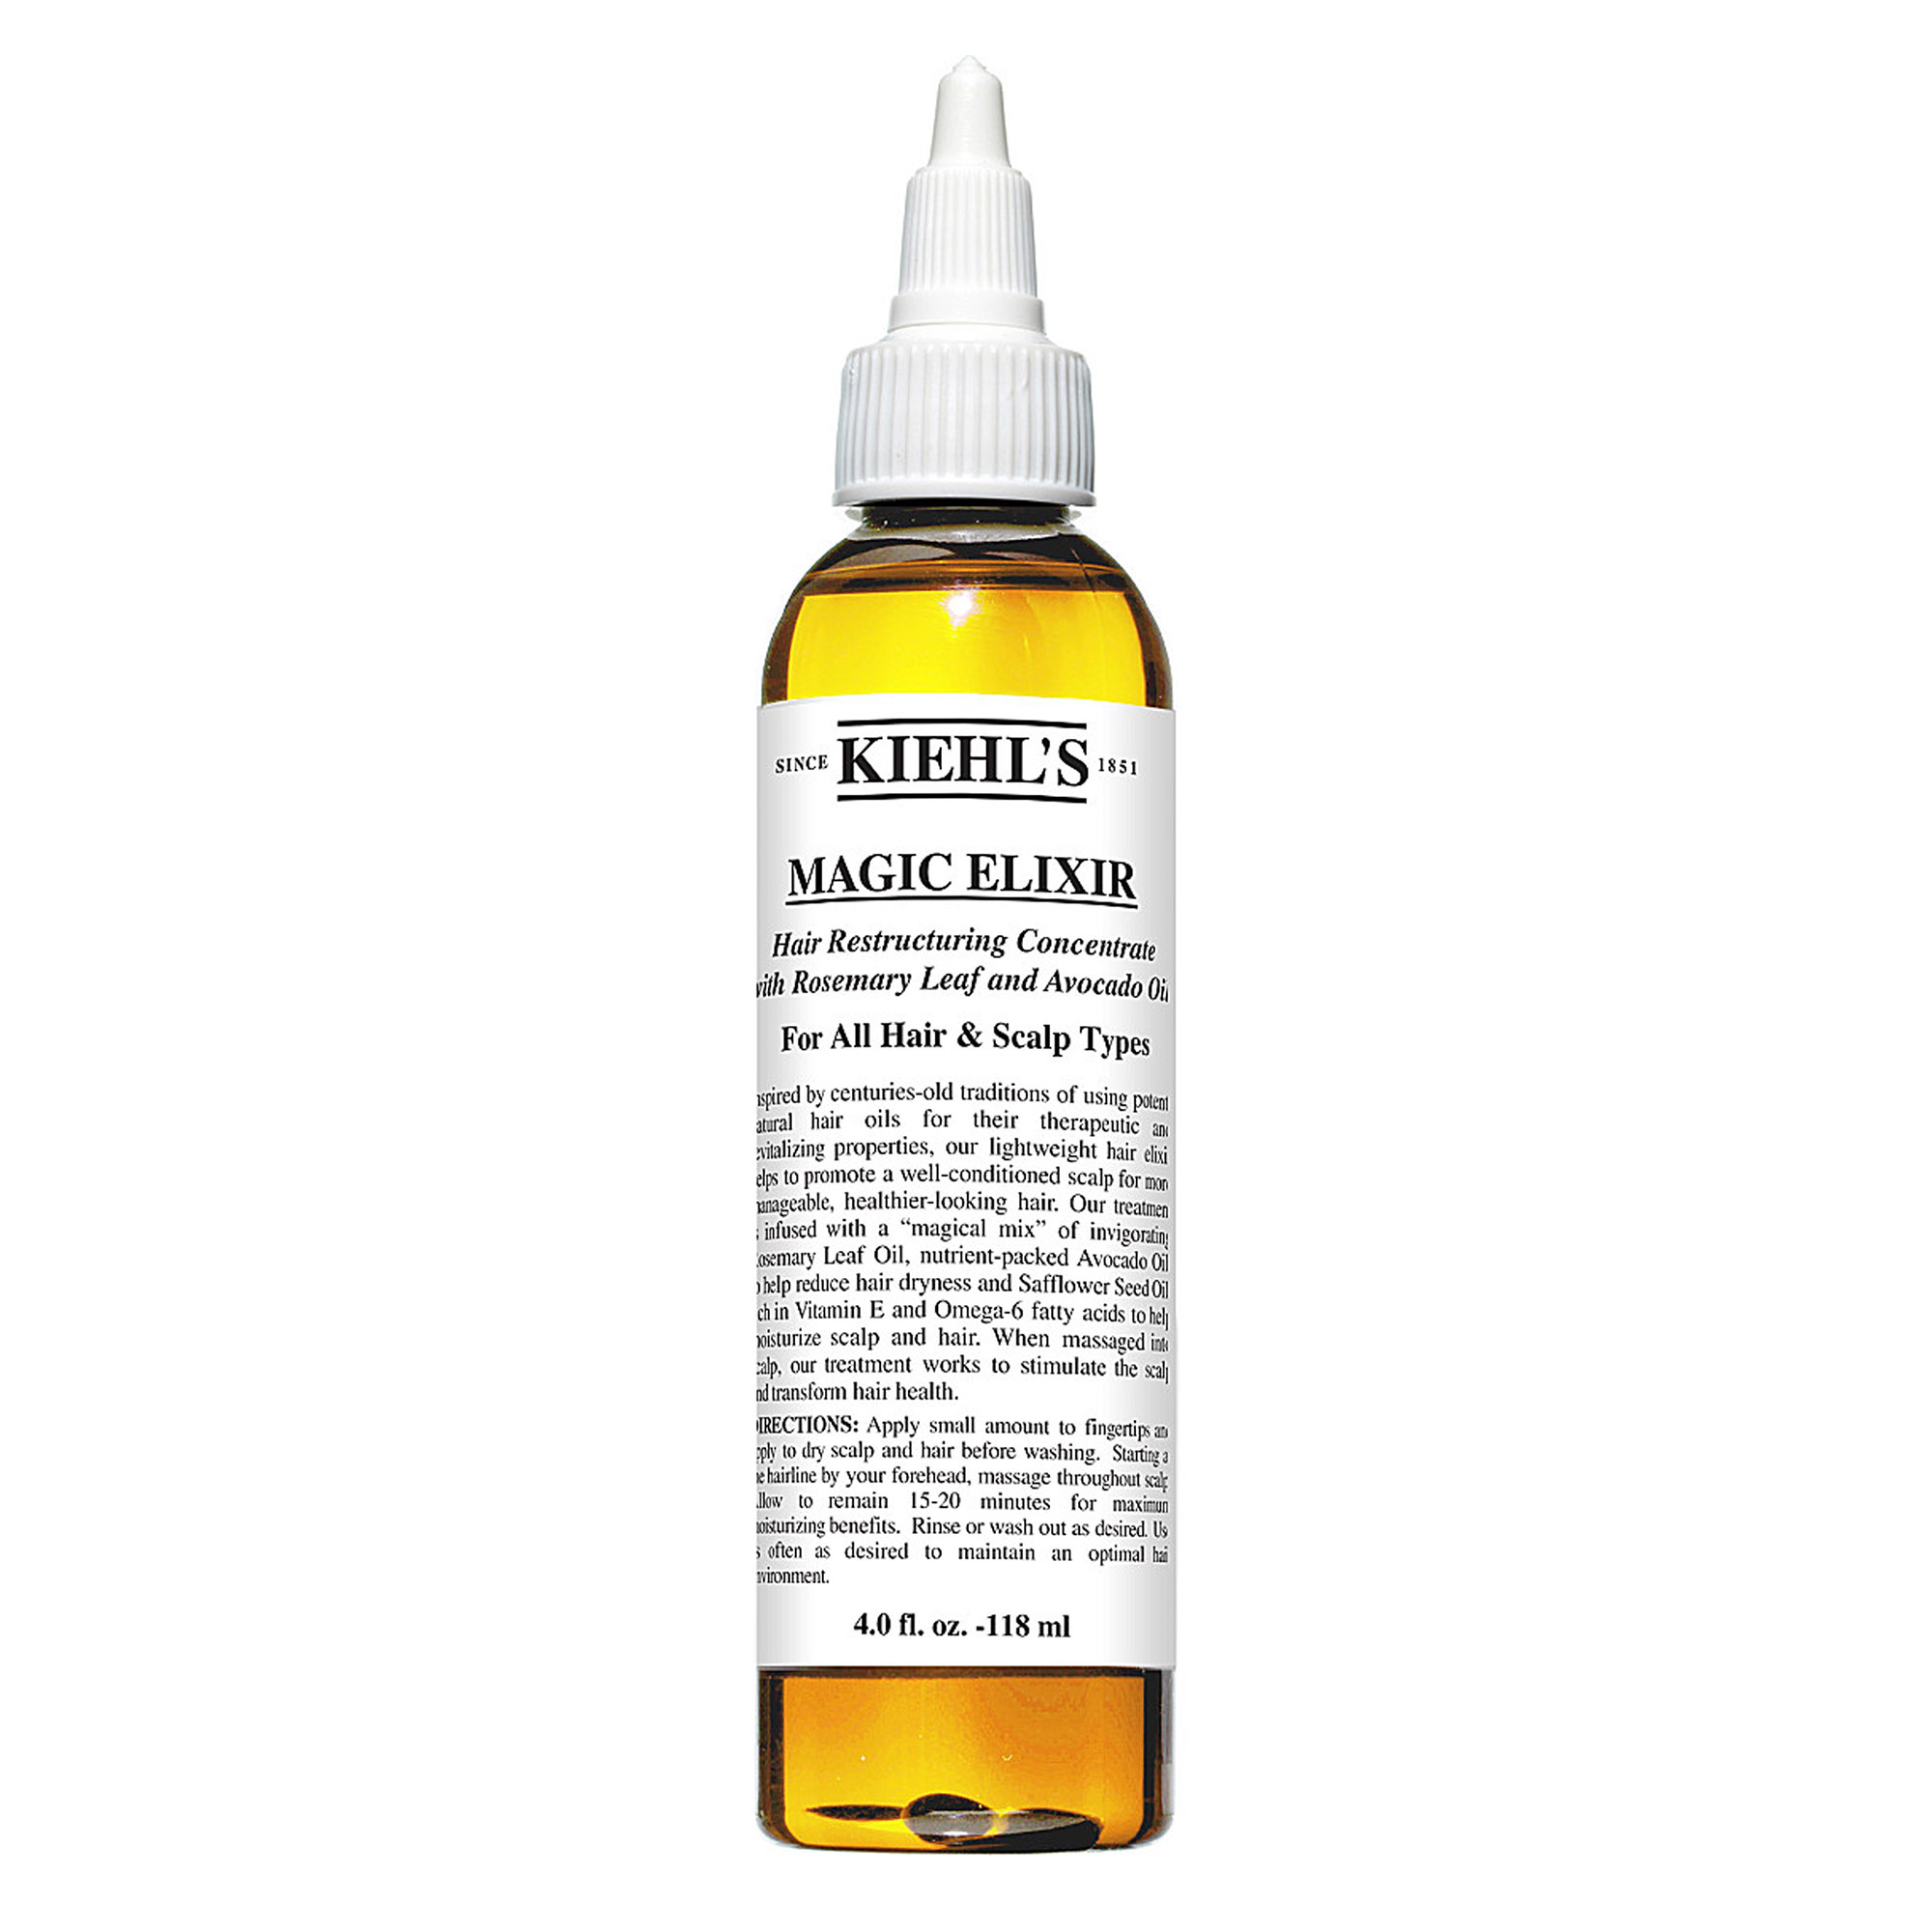 MAGIC ELIXIR HAIR CONDITIONING CONCENTRATE 118ML